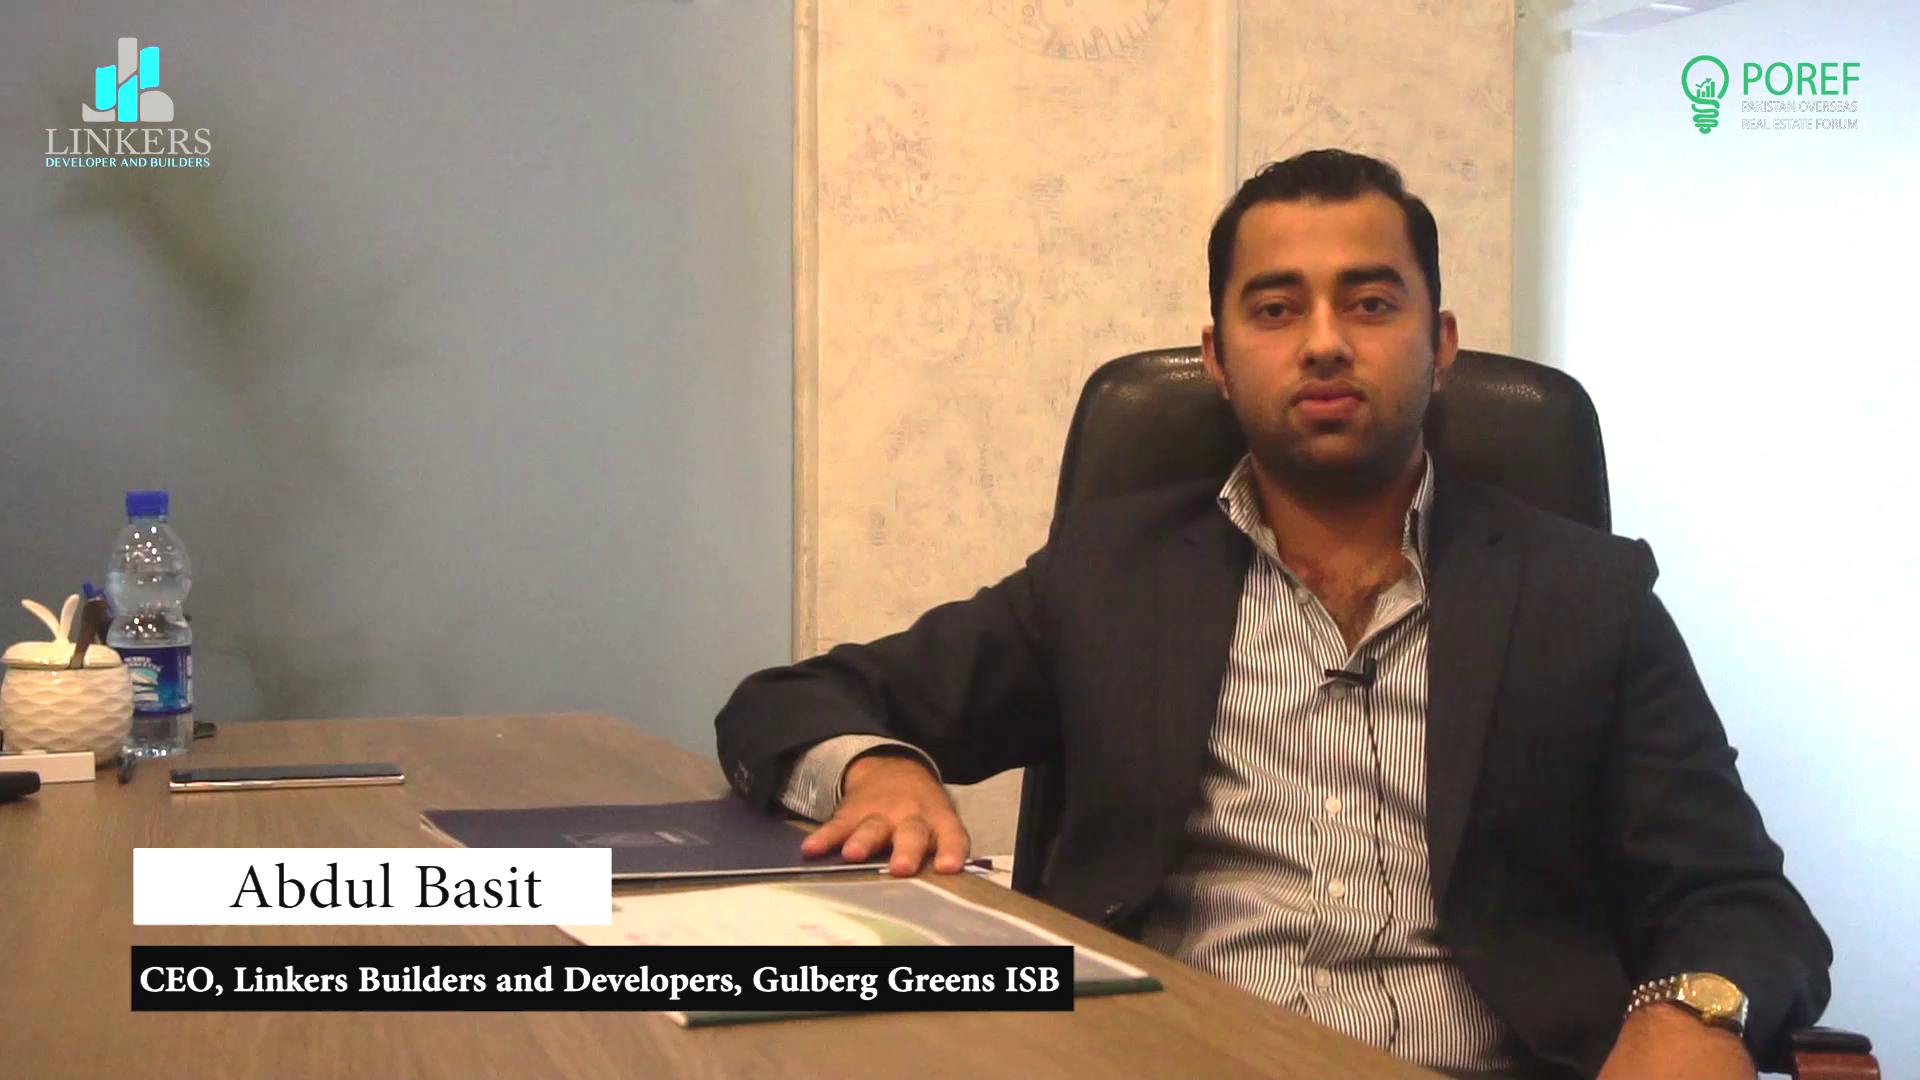 Abdul Basit, CEO - Linkers Builders and Developers, Gulberg Greens